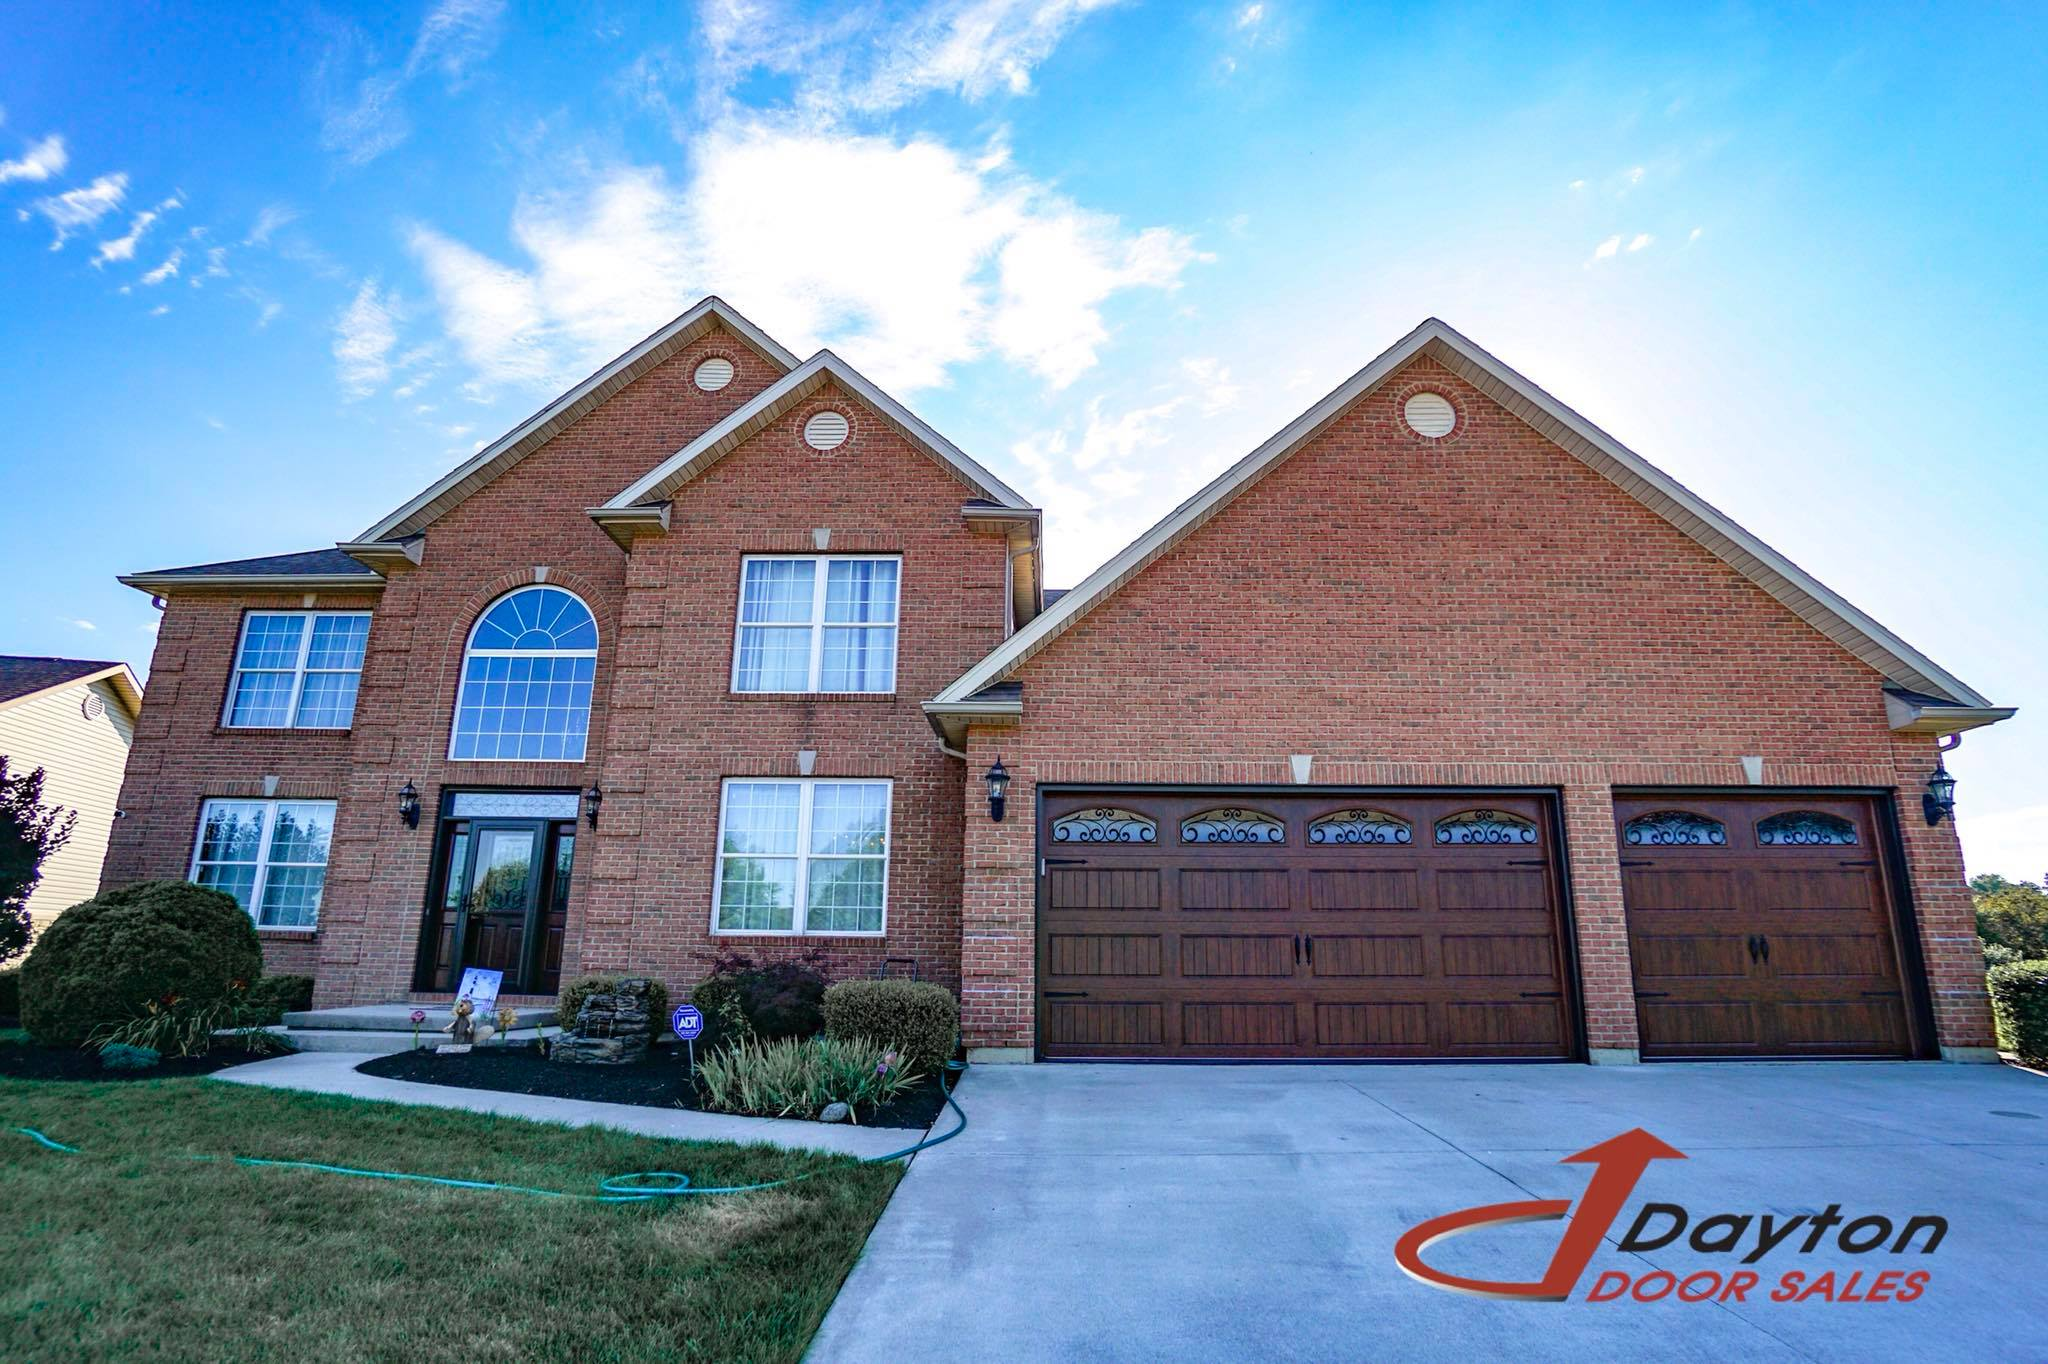 Ohio's Top Rated Local® Garage Door Contractors Award Winner: Dayton Door Sales